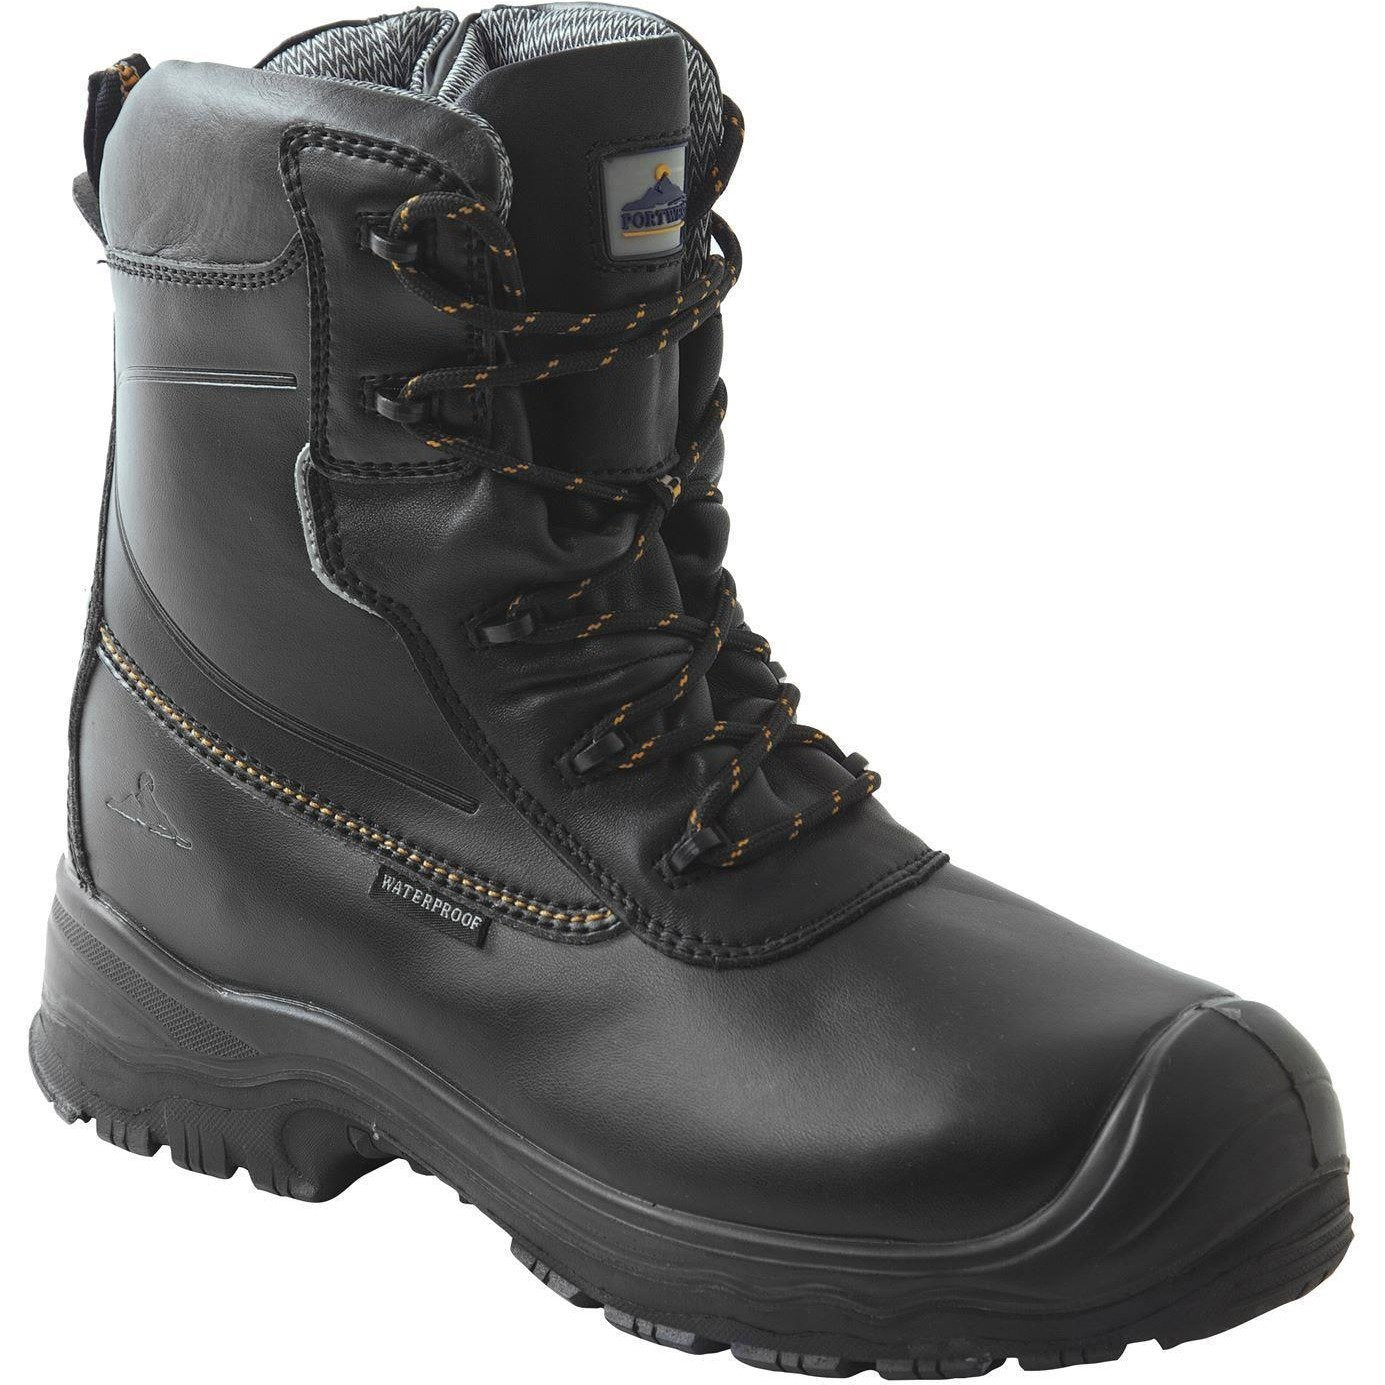 Portwest Compositelite Traction 7 inch Safety Boot S3 HRO CI WR - reid outdoors